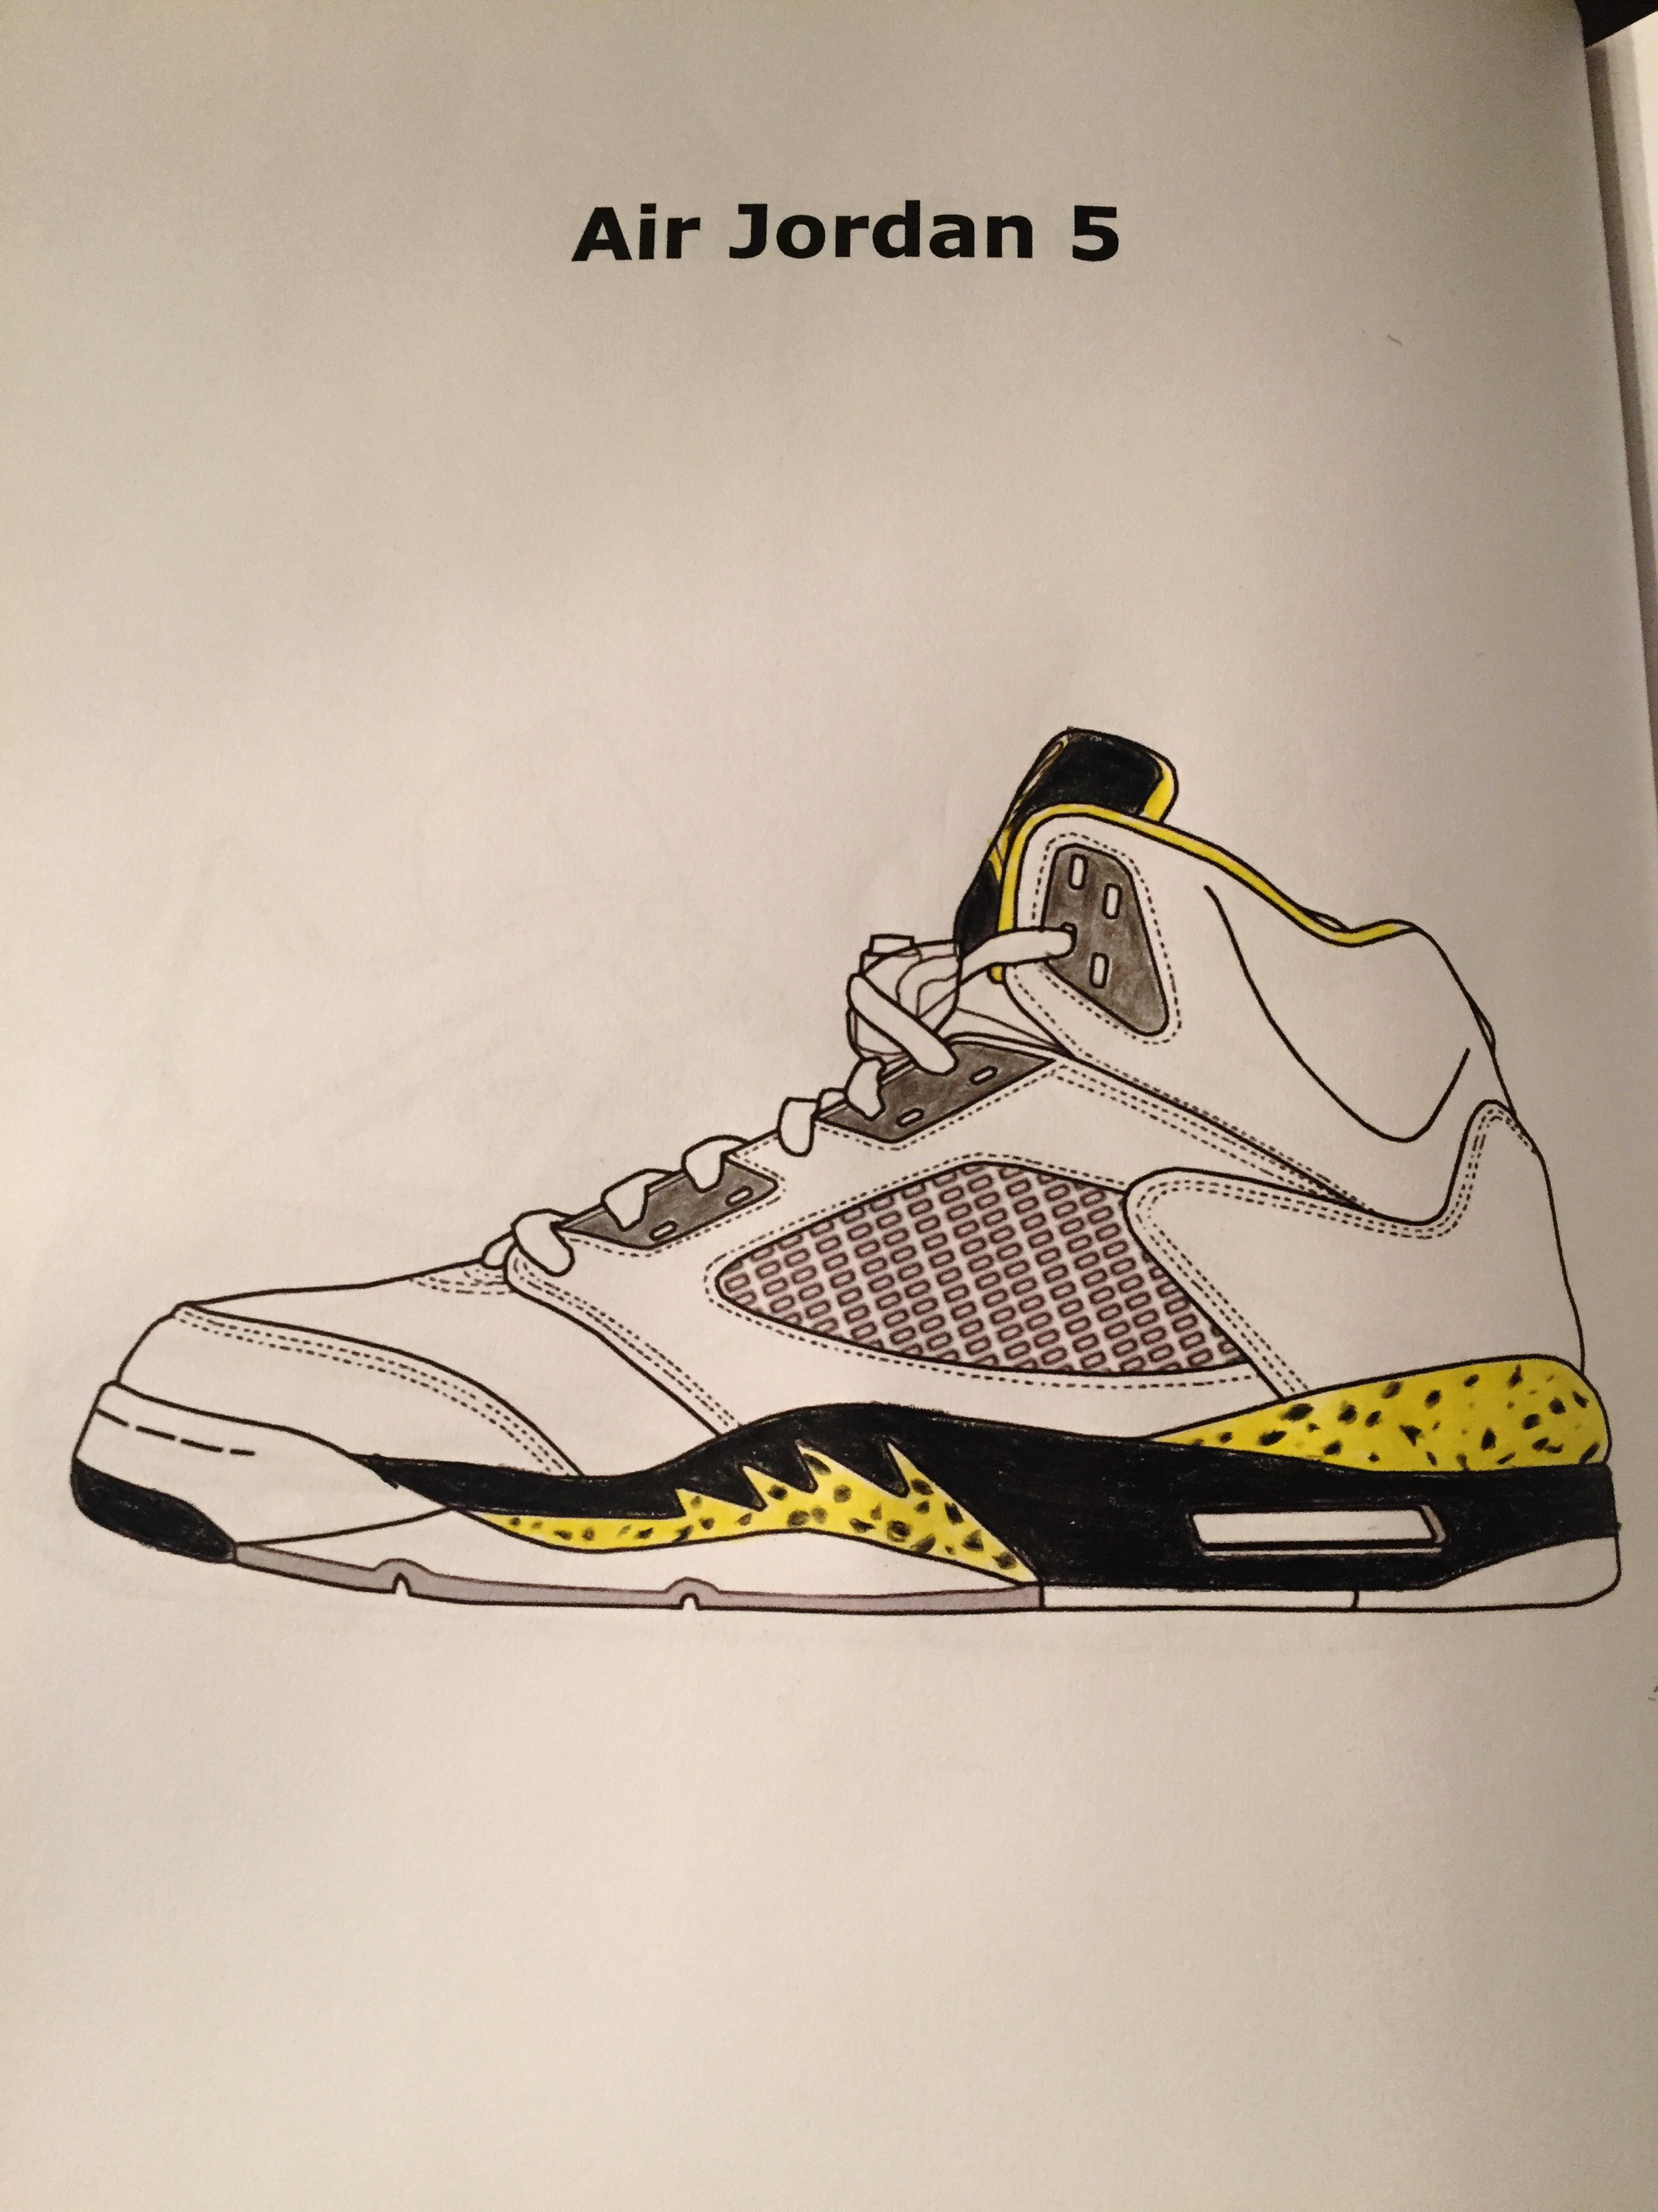 Coloring pages for jordans - Img_9417 Img_9415 Img_9416